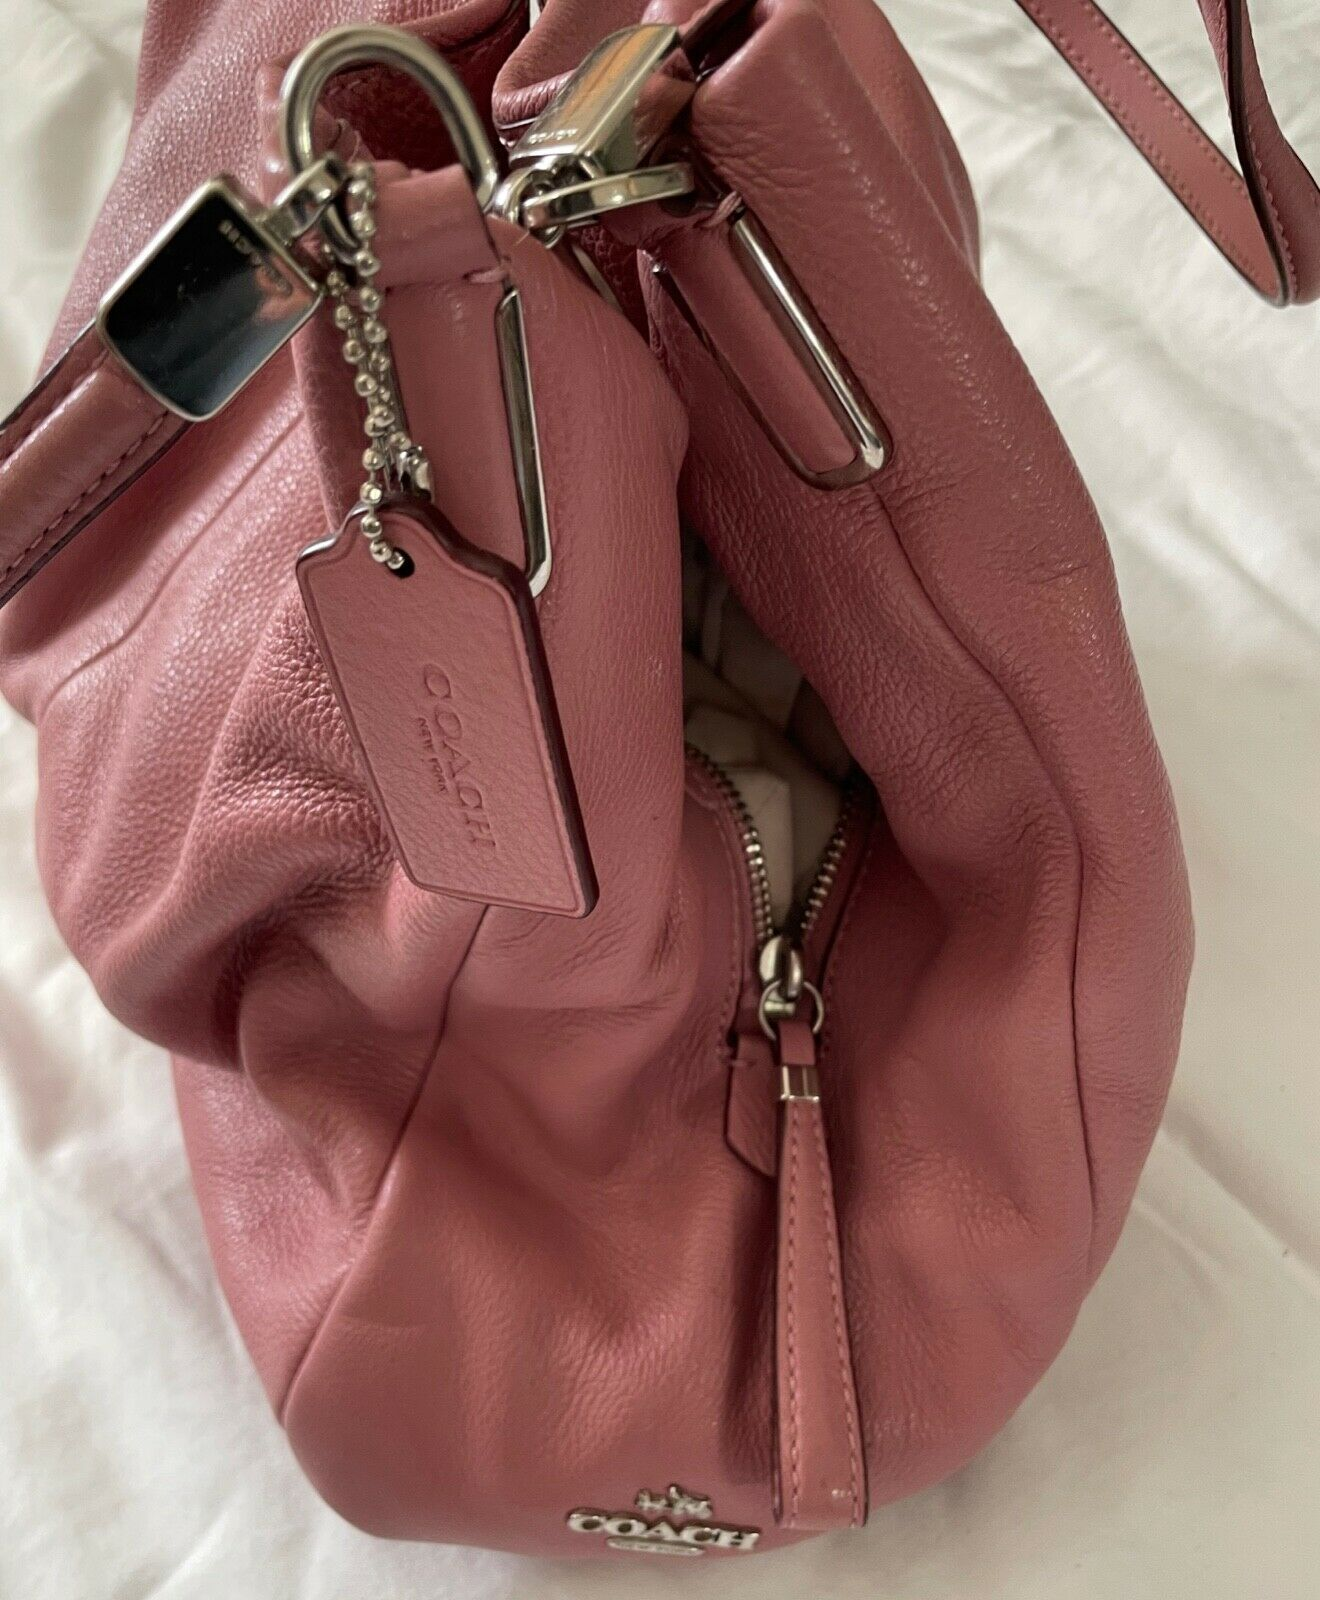 Coach Dusty Pink Leather Satchel - image 2